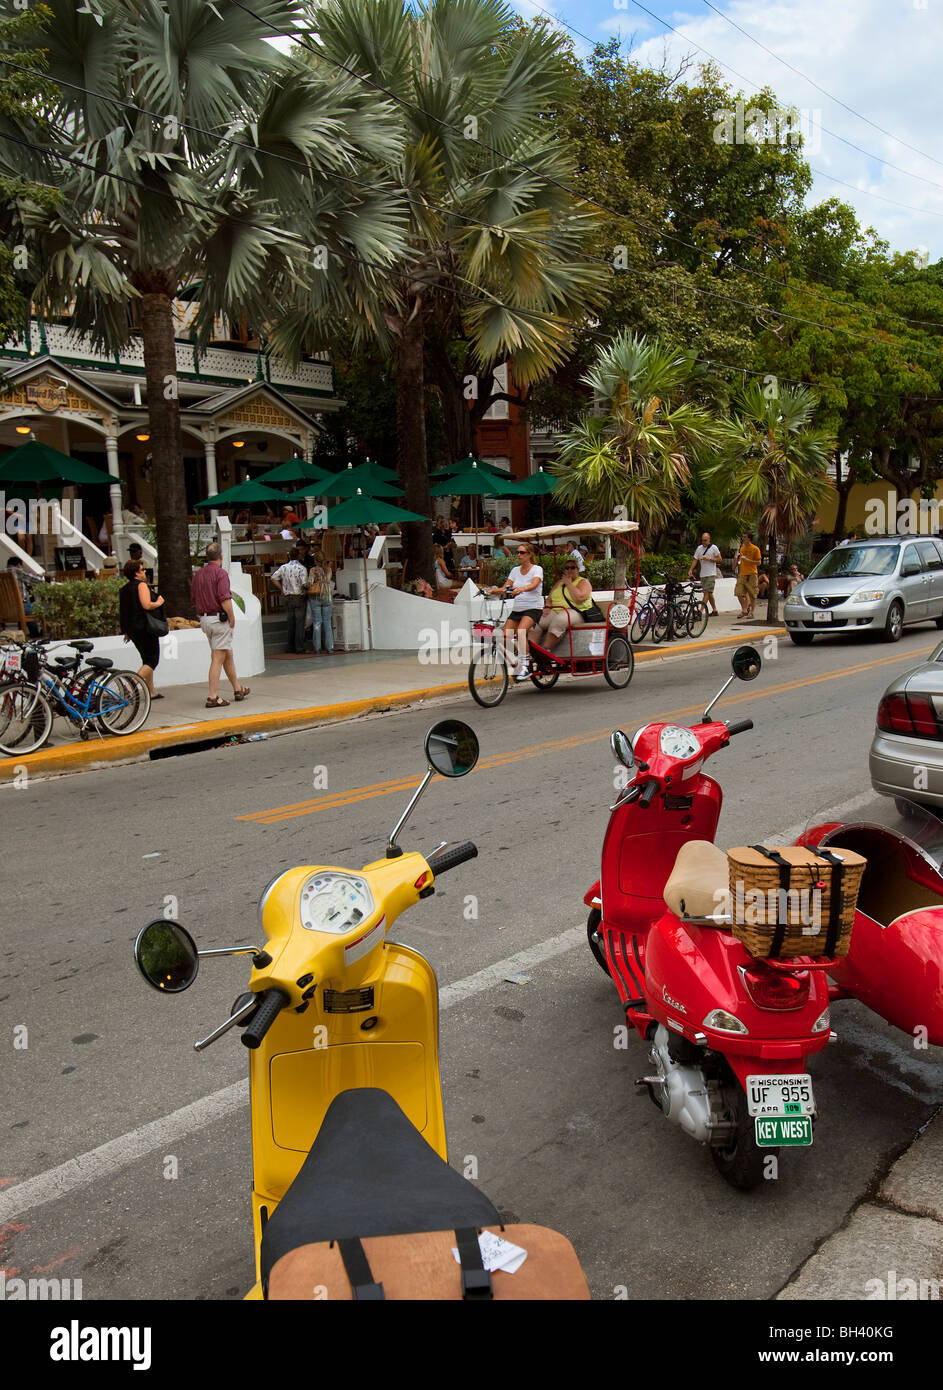 Duval Street, Key West, Florida - Stock Image